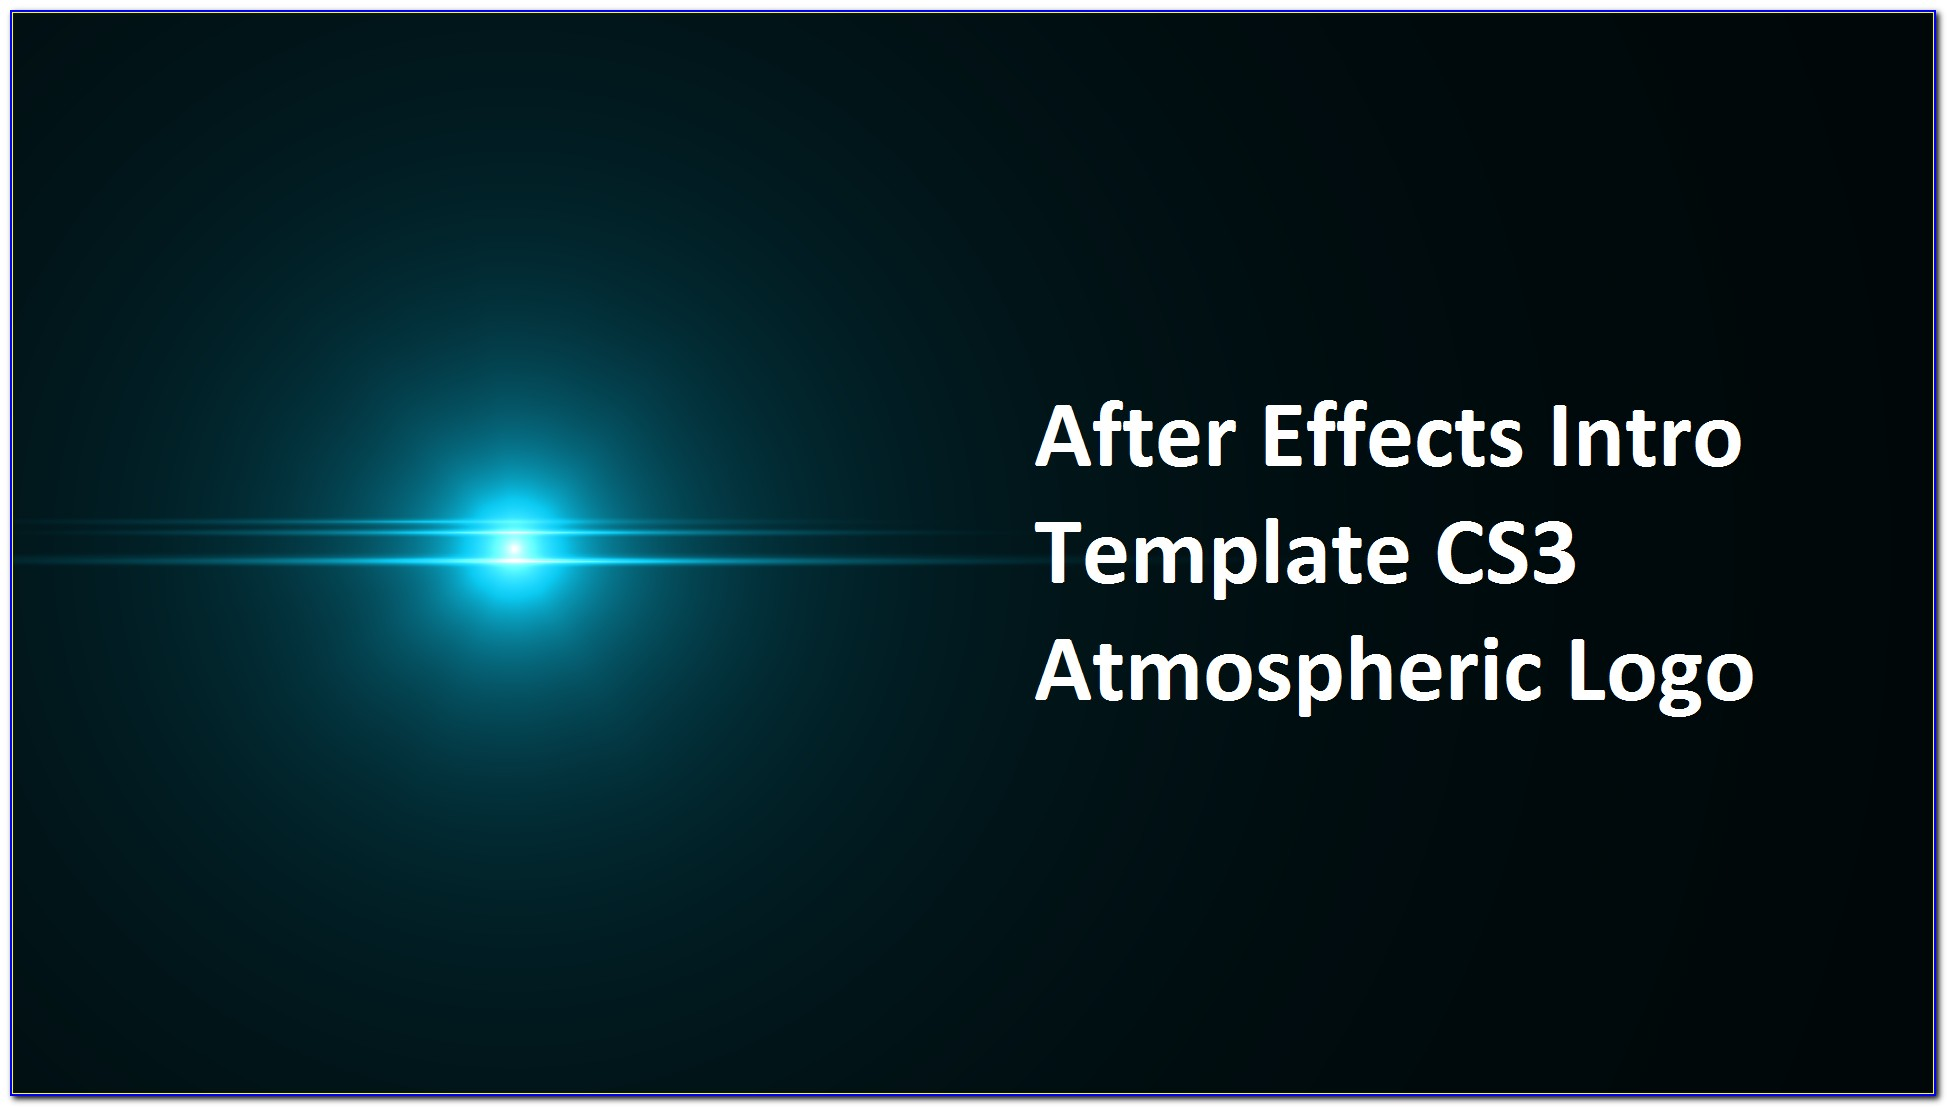 After Effects Templates Intro Logo